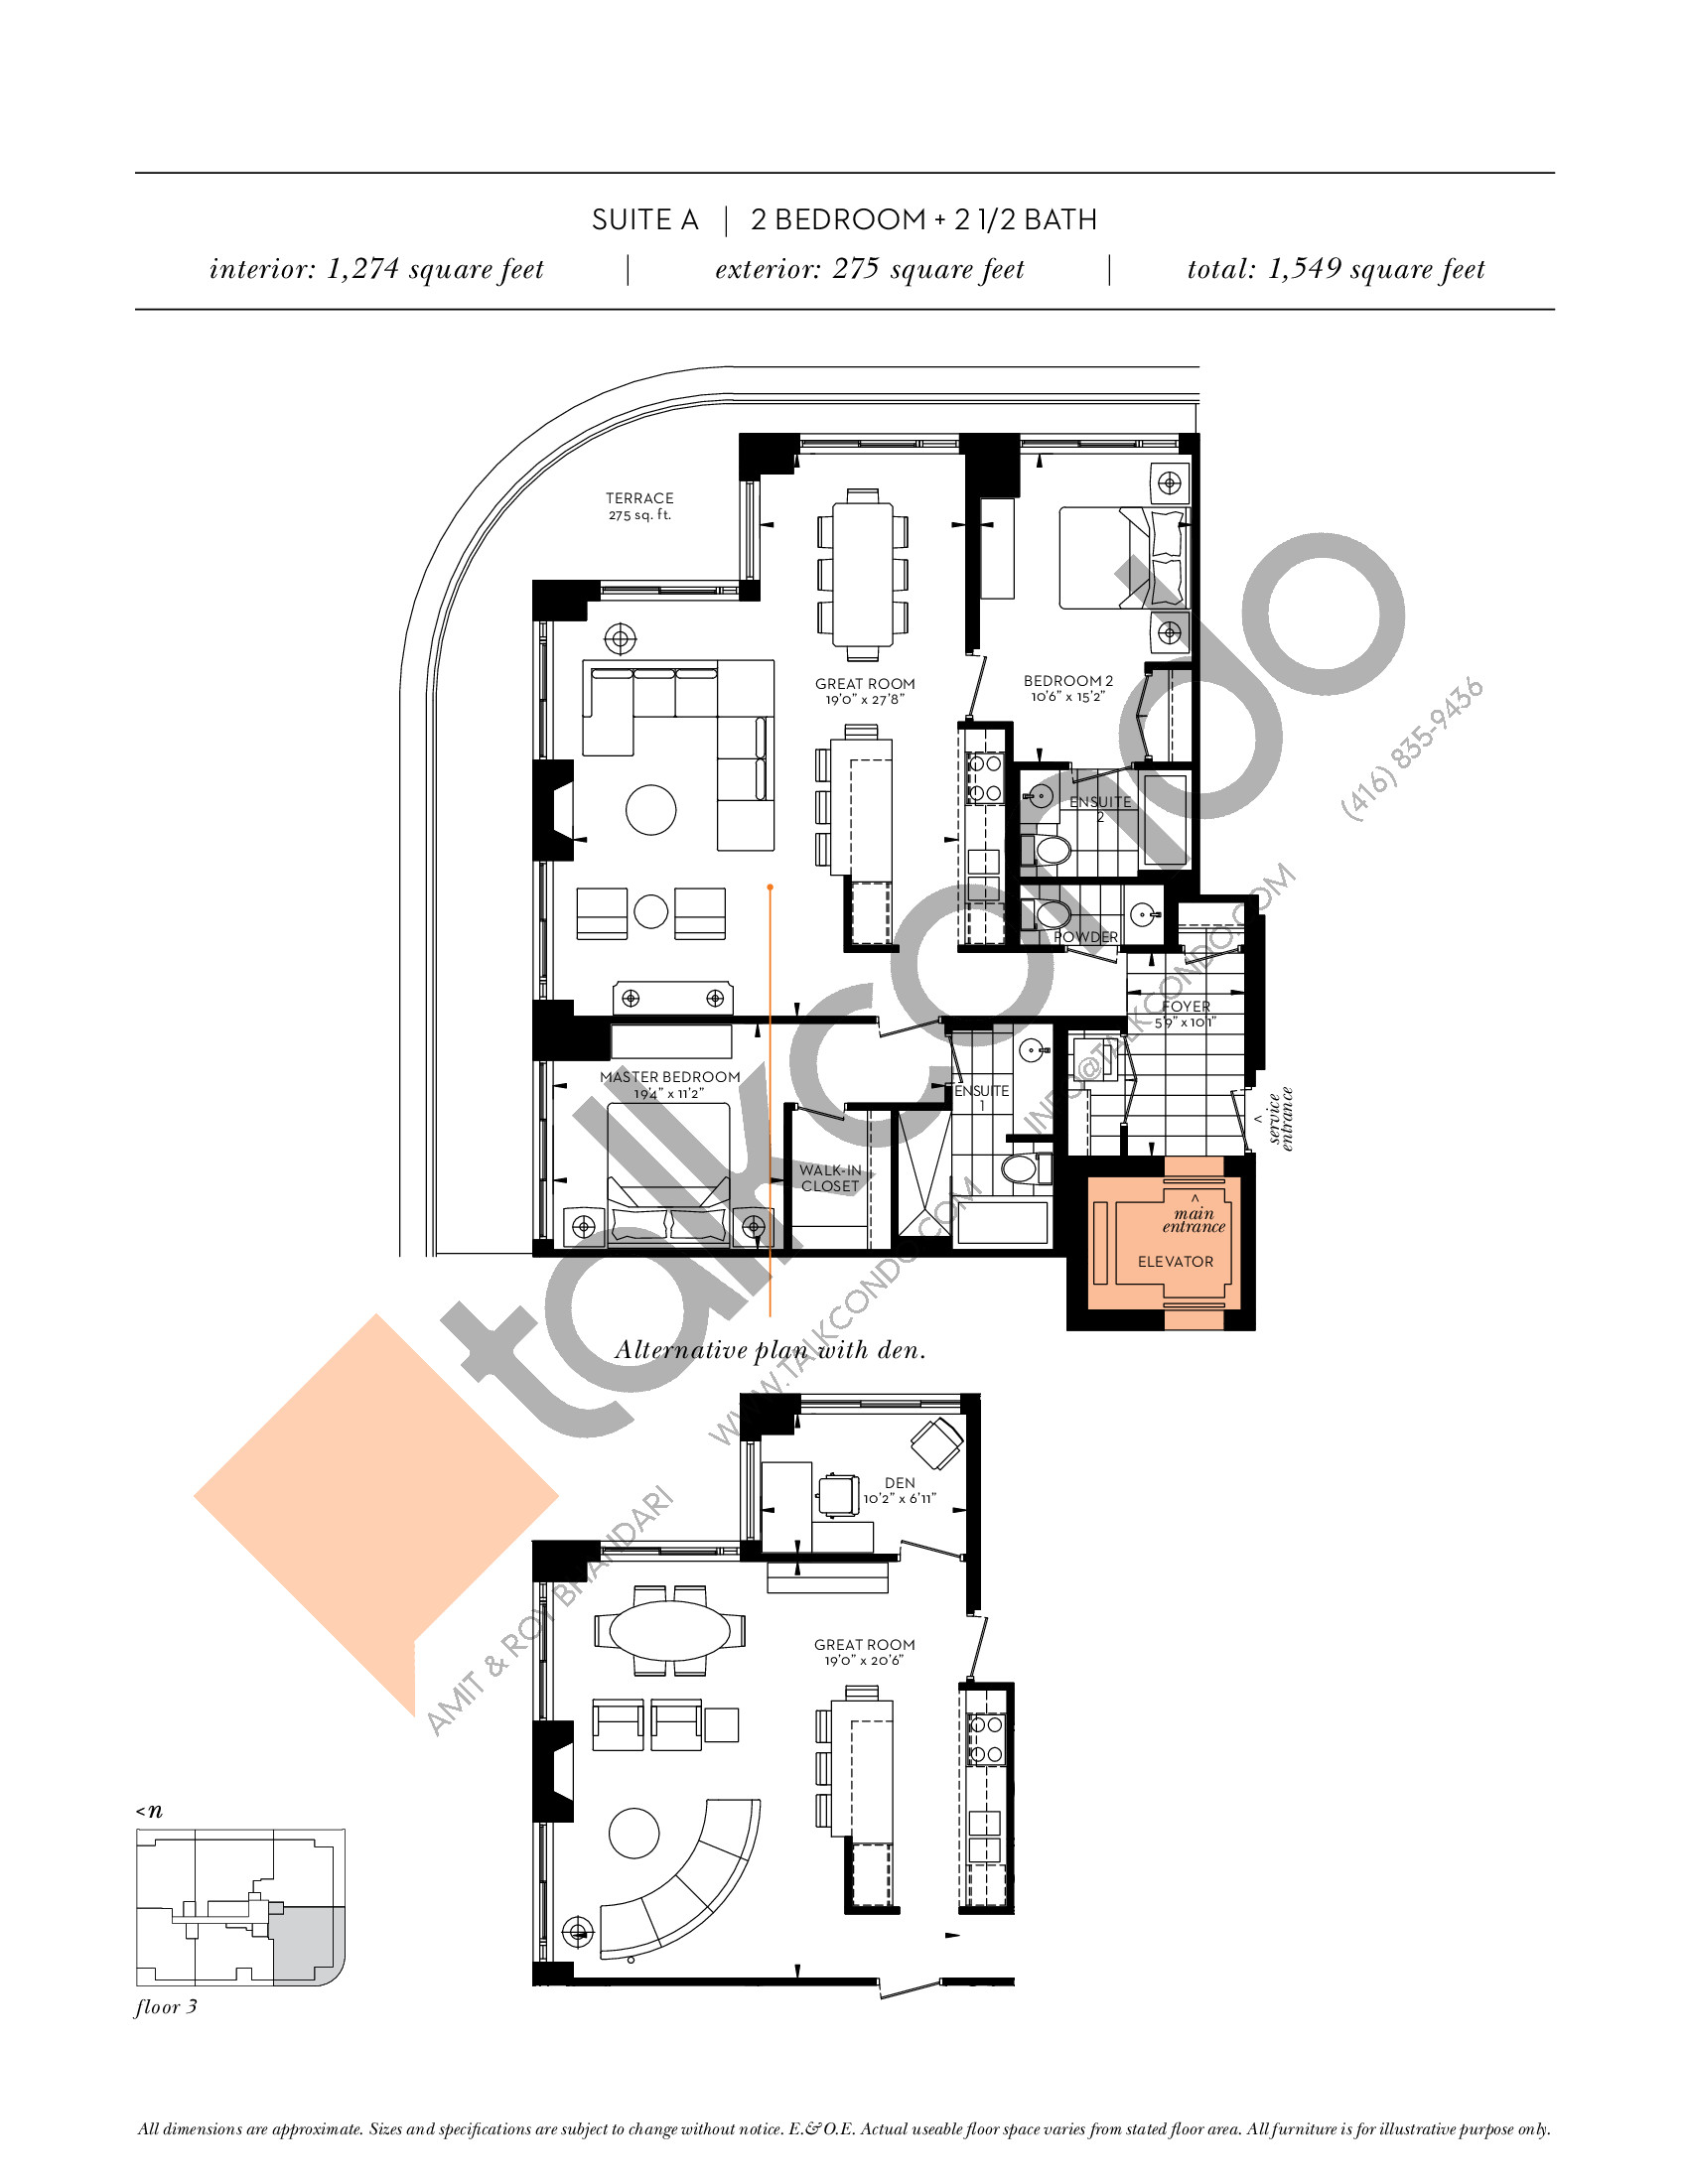 Suite A Floor Plan at The Davies - 1274 sq.ft